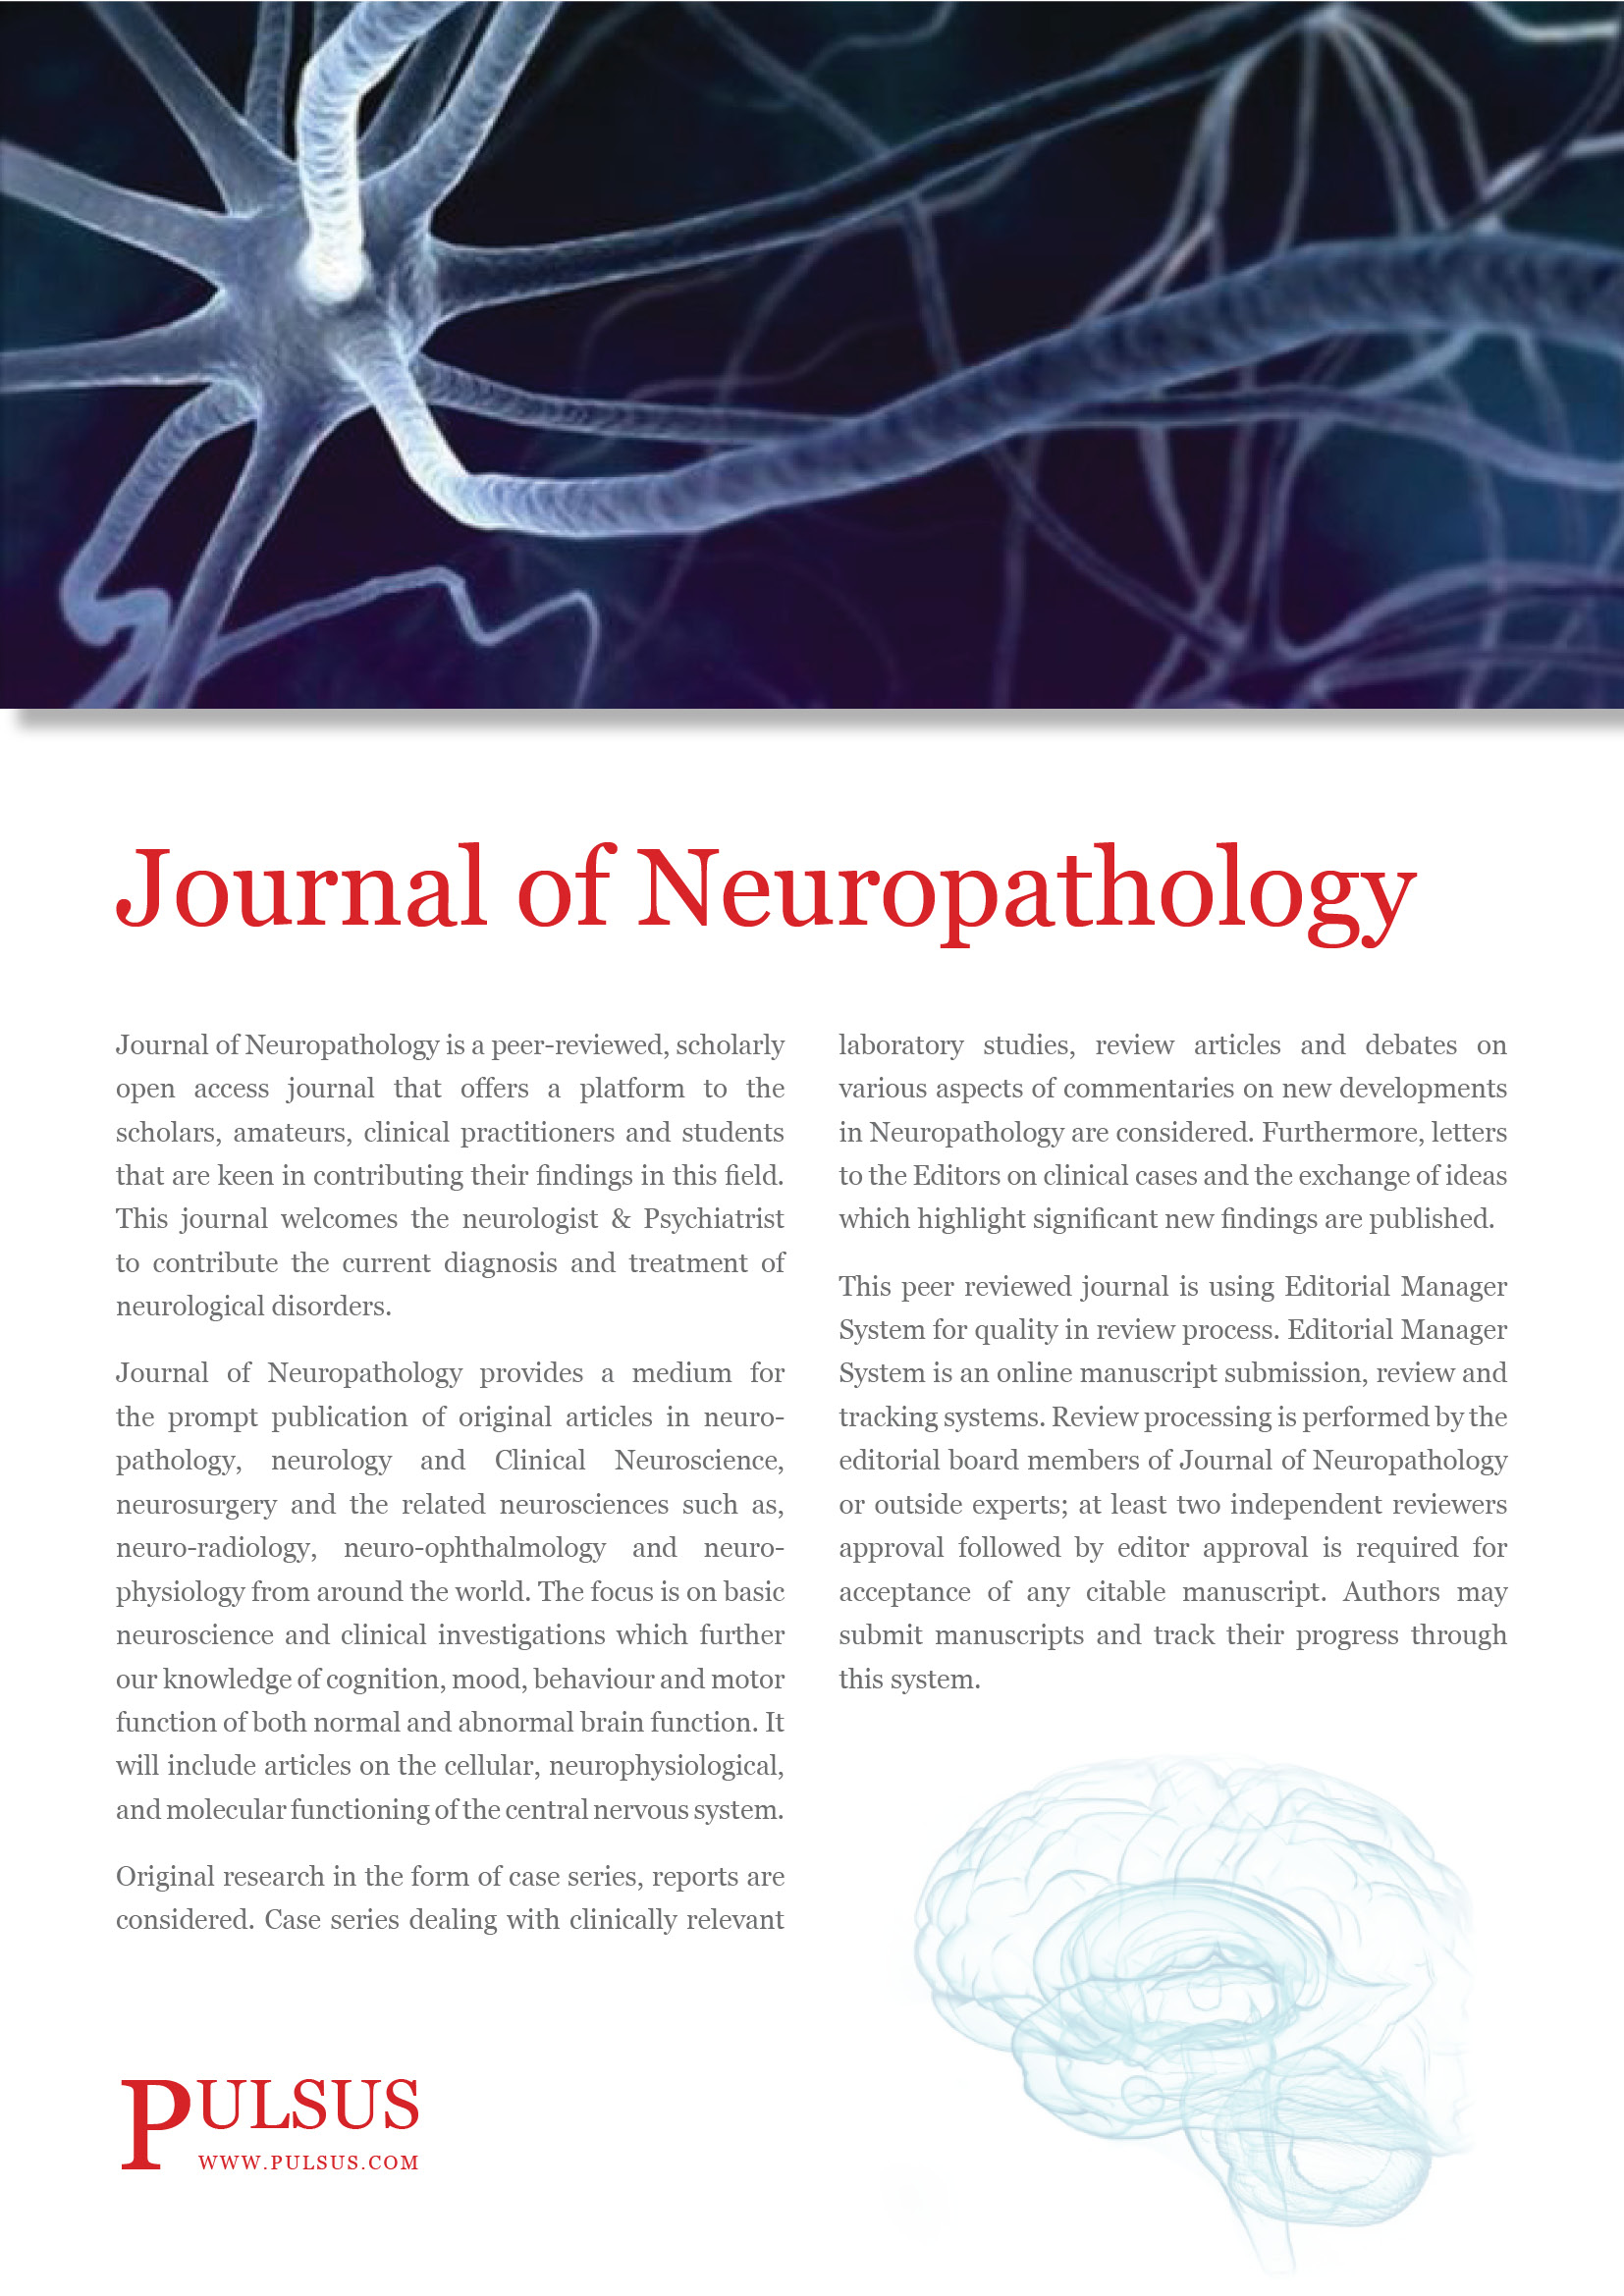 Journal of Neuropathology